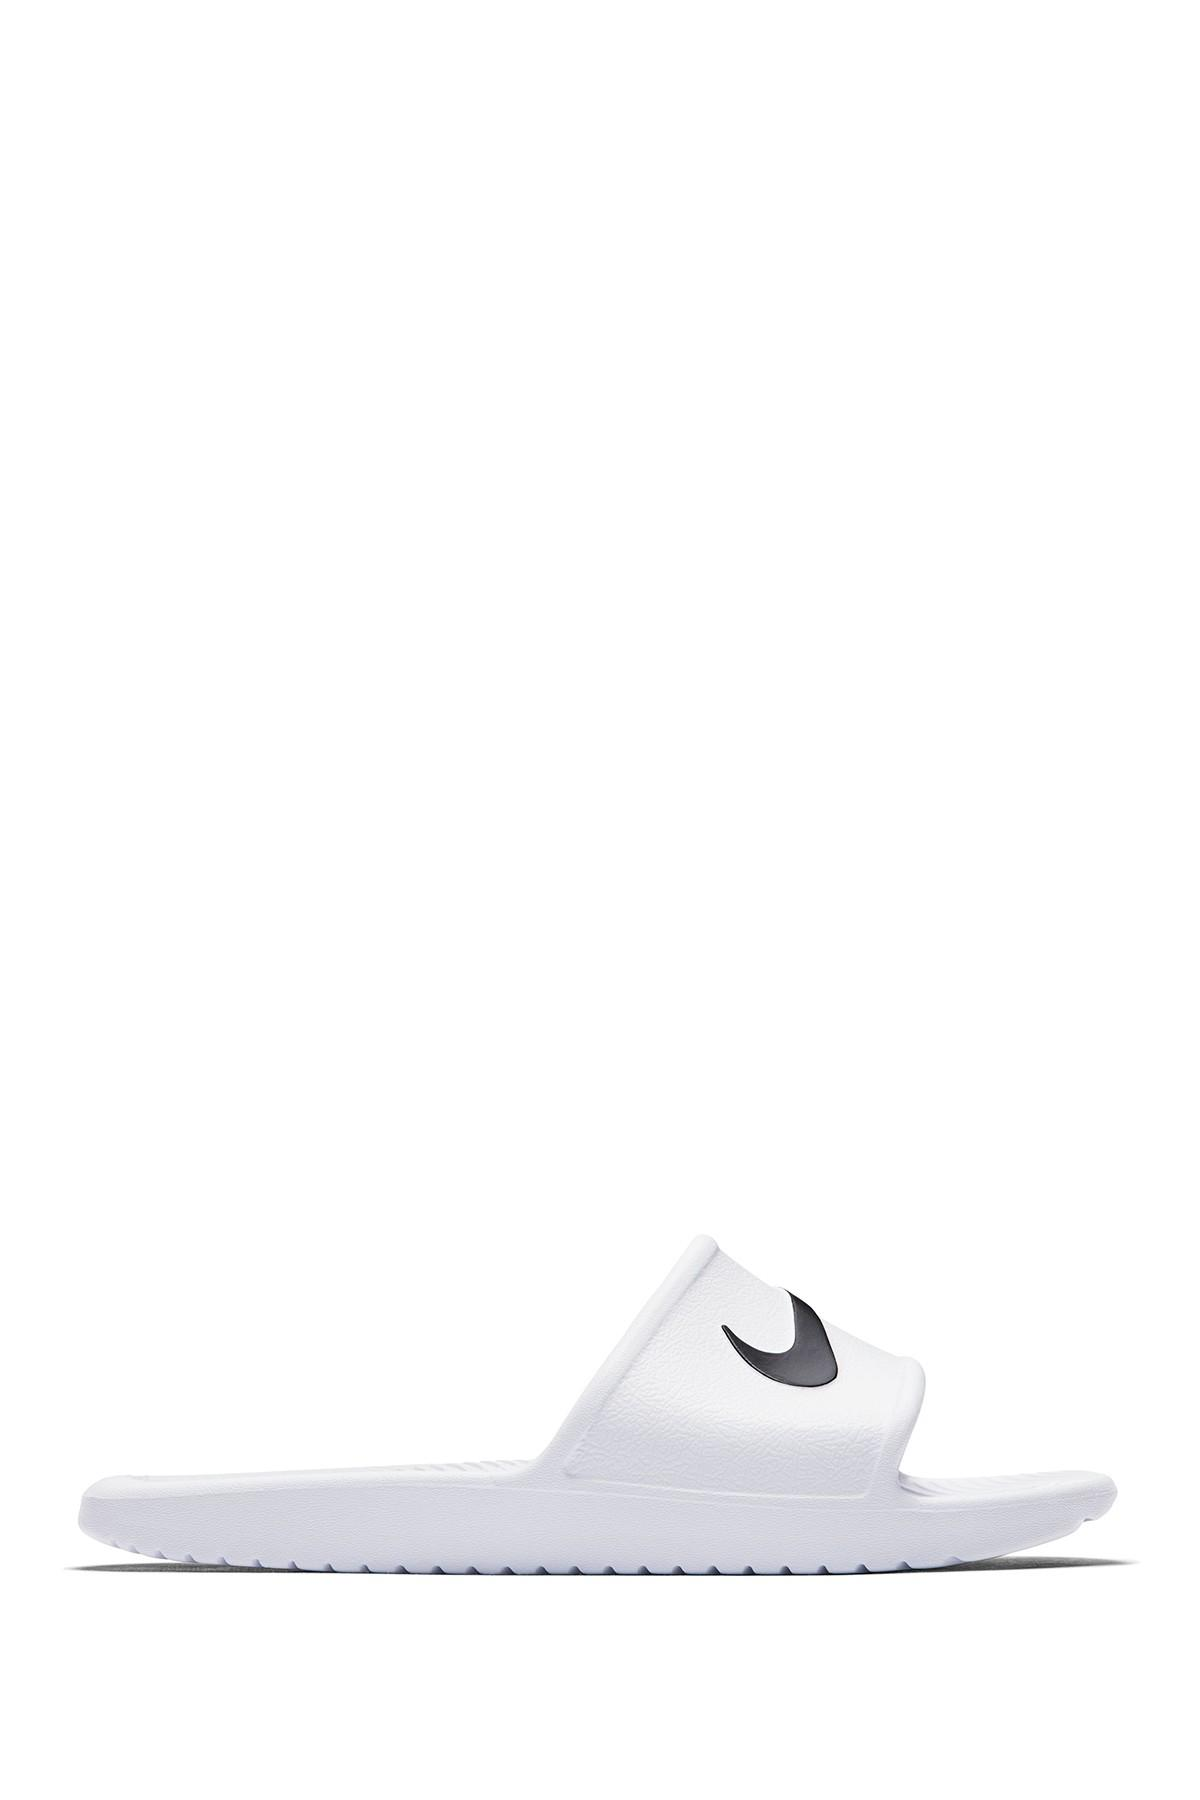 ca1bfda2293d Lyst - Nike Wmns Kawa Shower White  Black in White - Save 33%